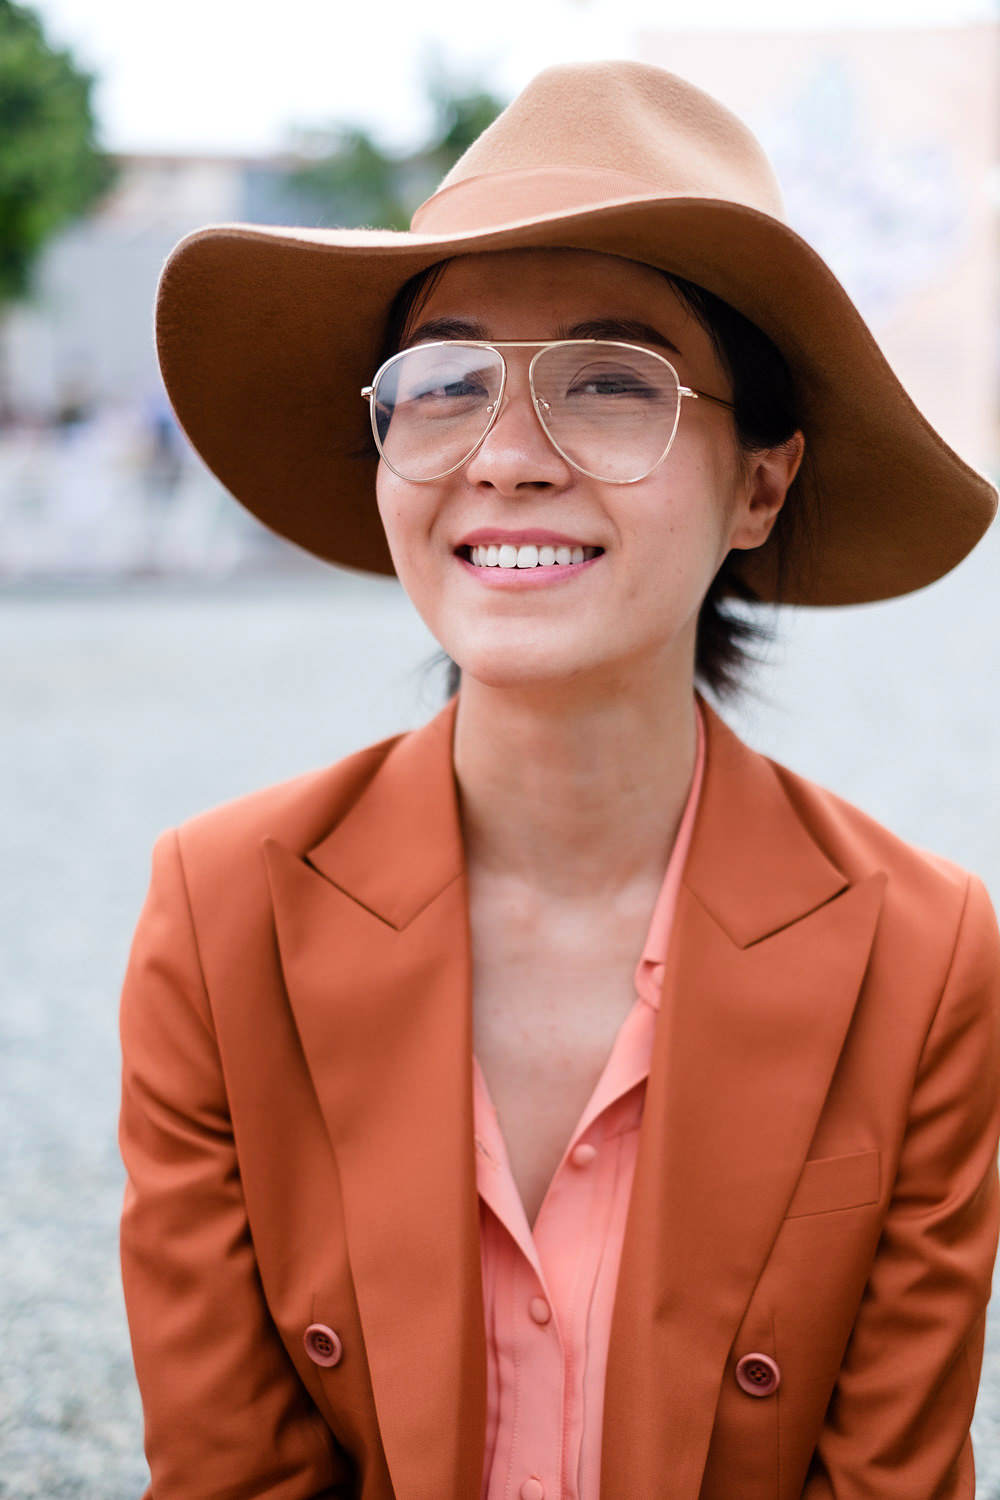 Woman at Pitti Immagine Uomo in Florence